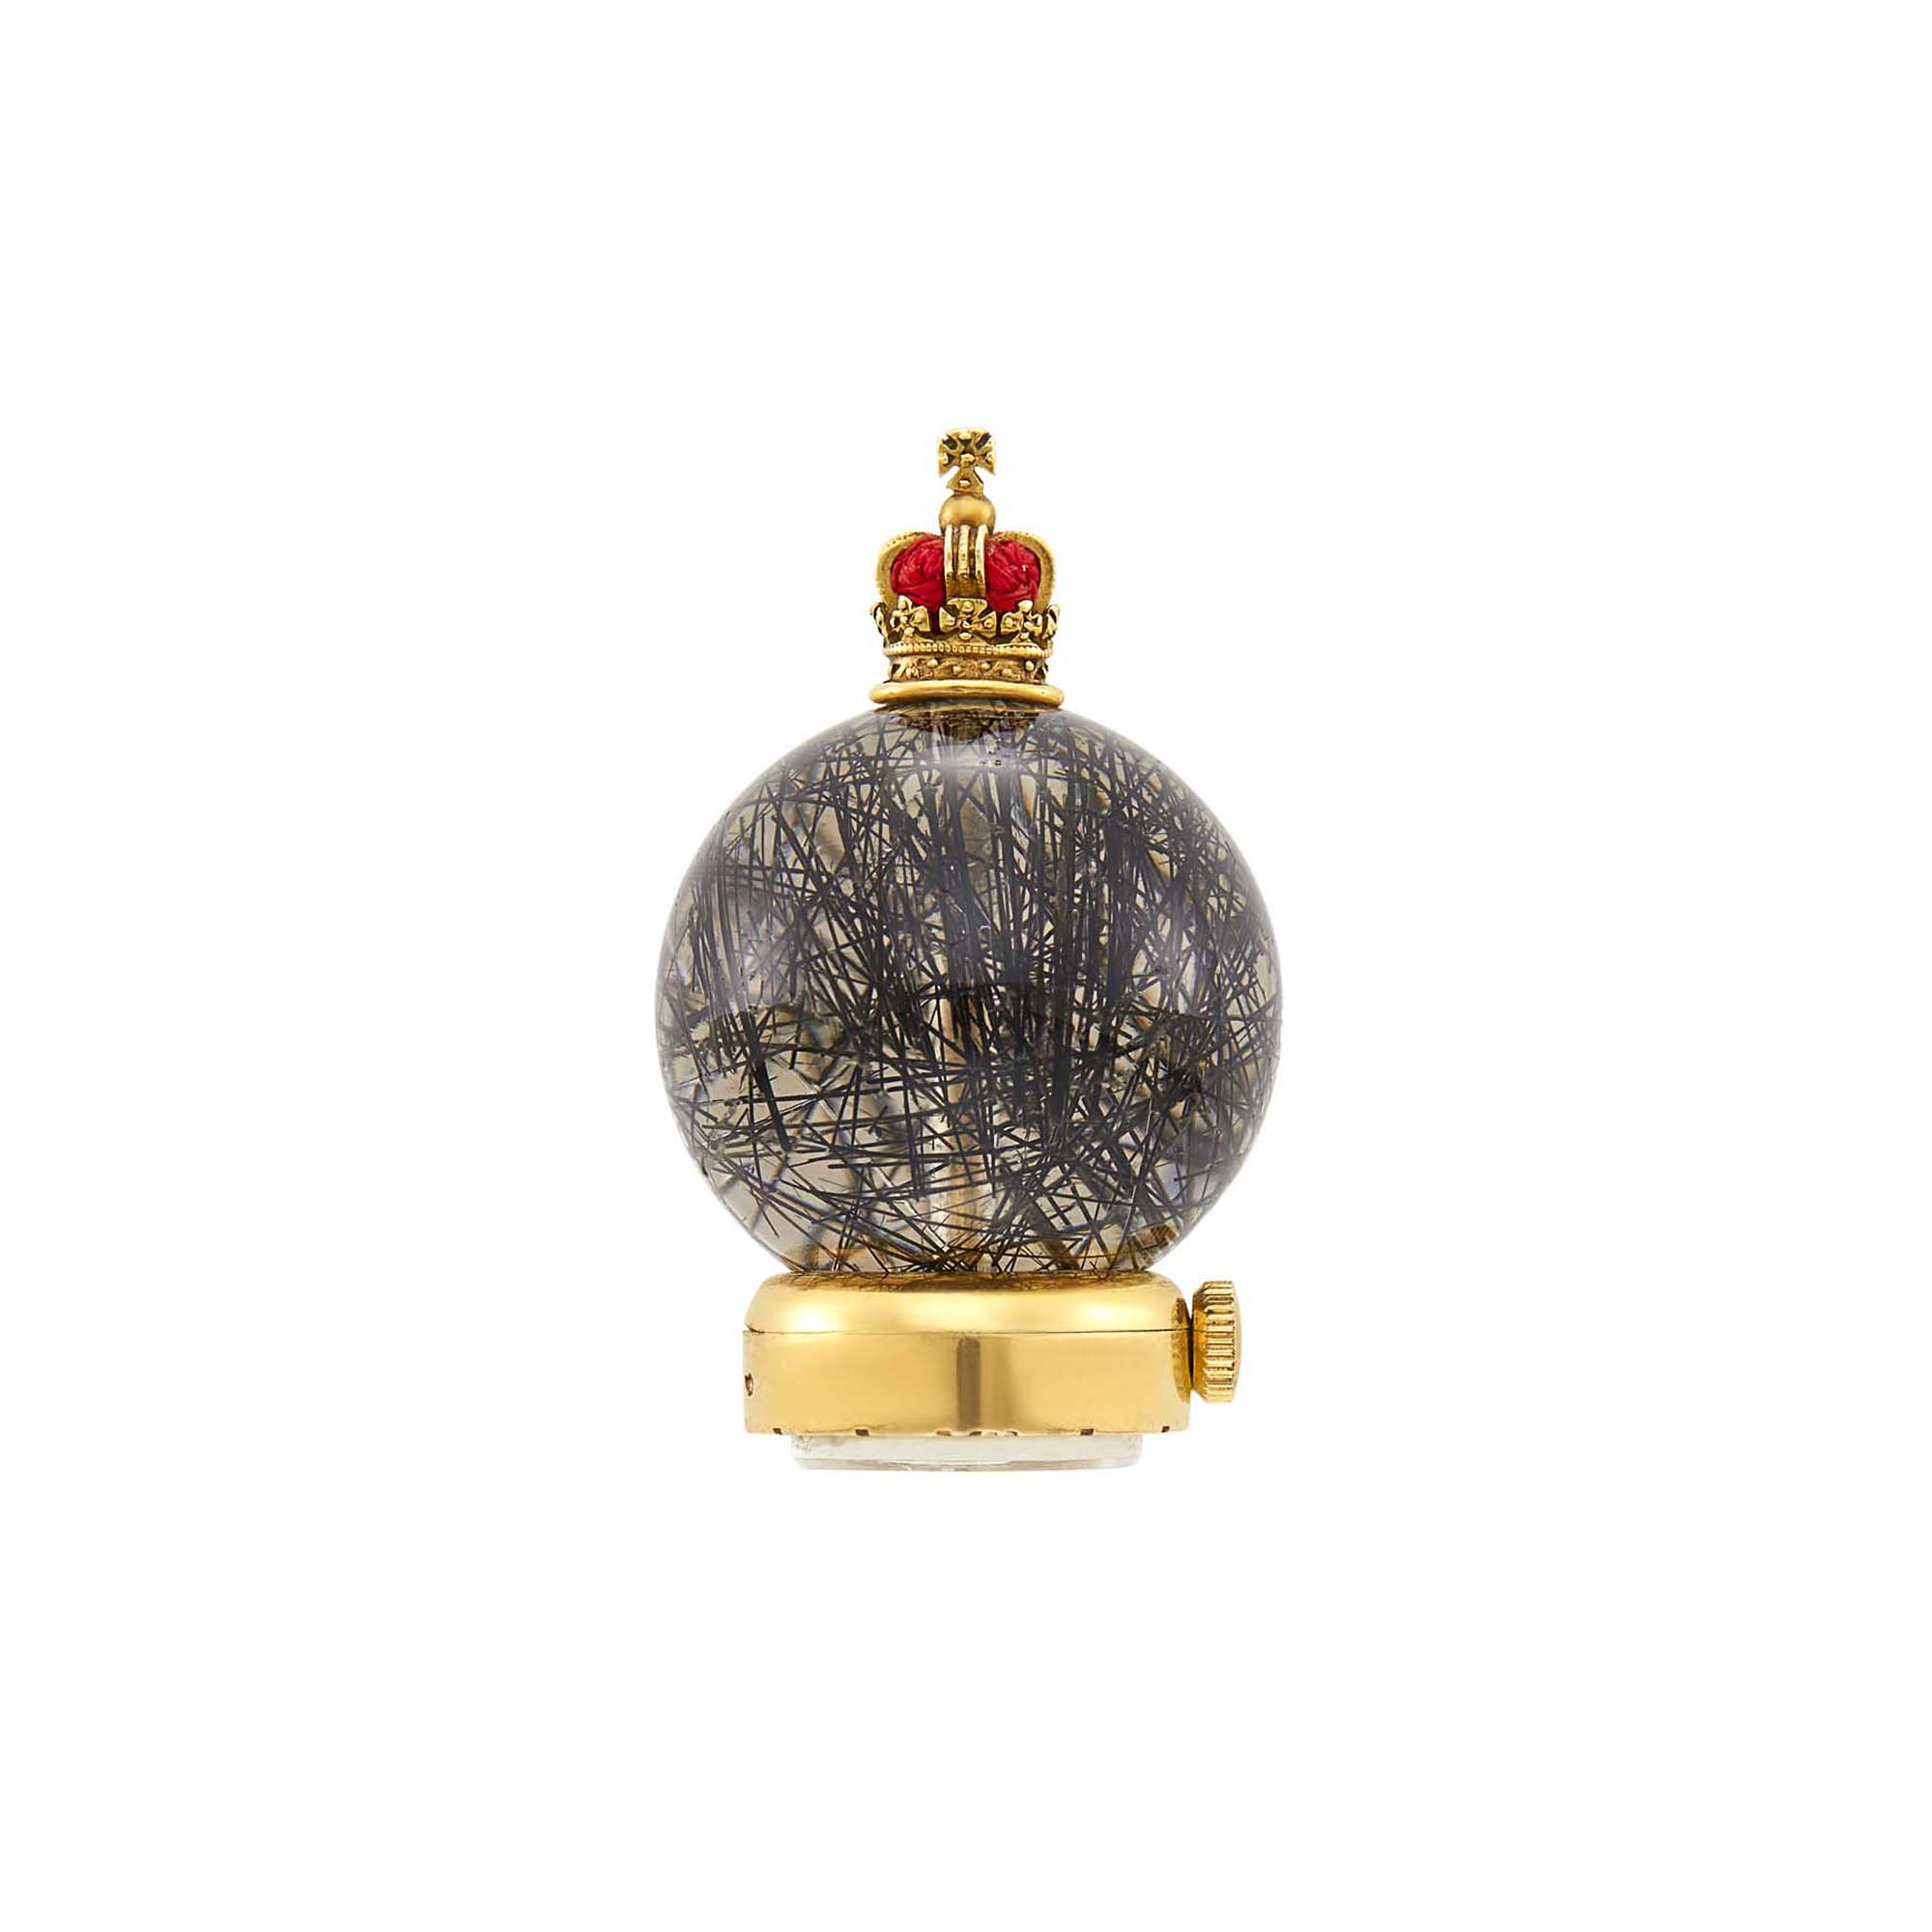 Lot image - Cartier Gold, Rutilated Quartz and Red Thread Sphere Desk Clock, France